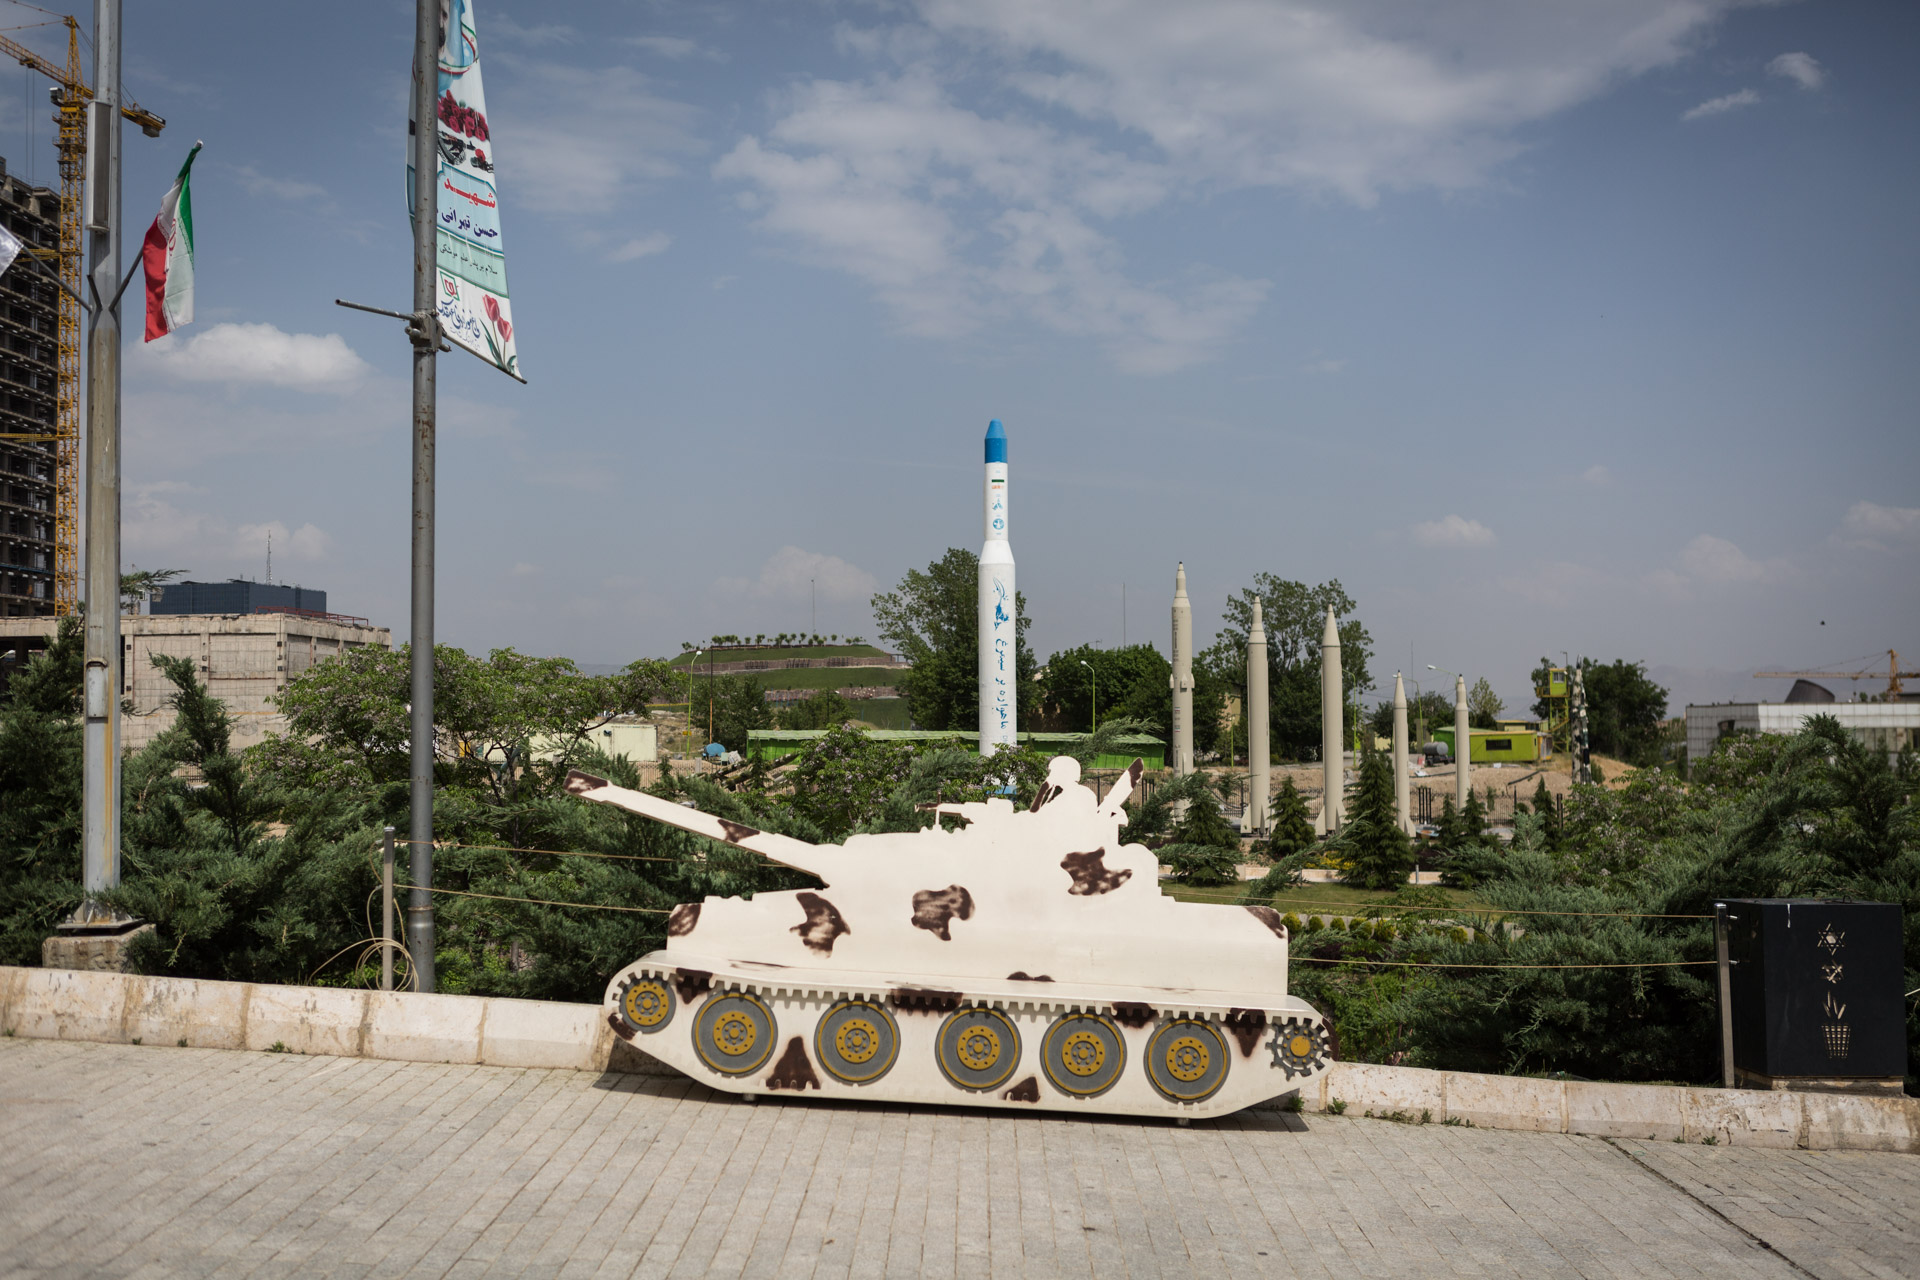 A bench in the public park outside the museum is shaped as a tank. A whole variety of long-range rockets is visible in the background.